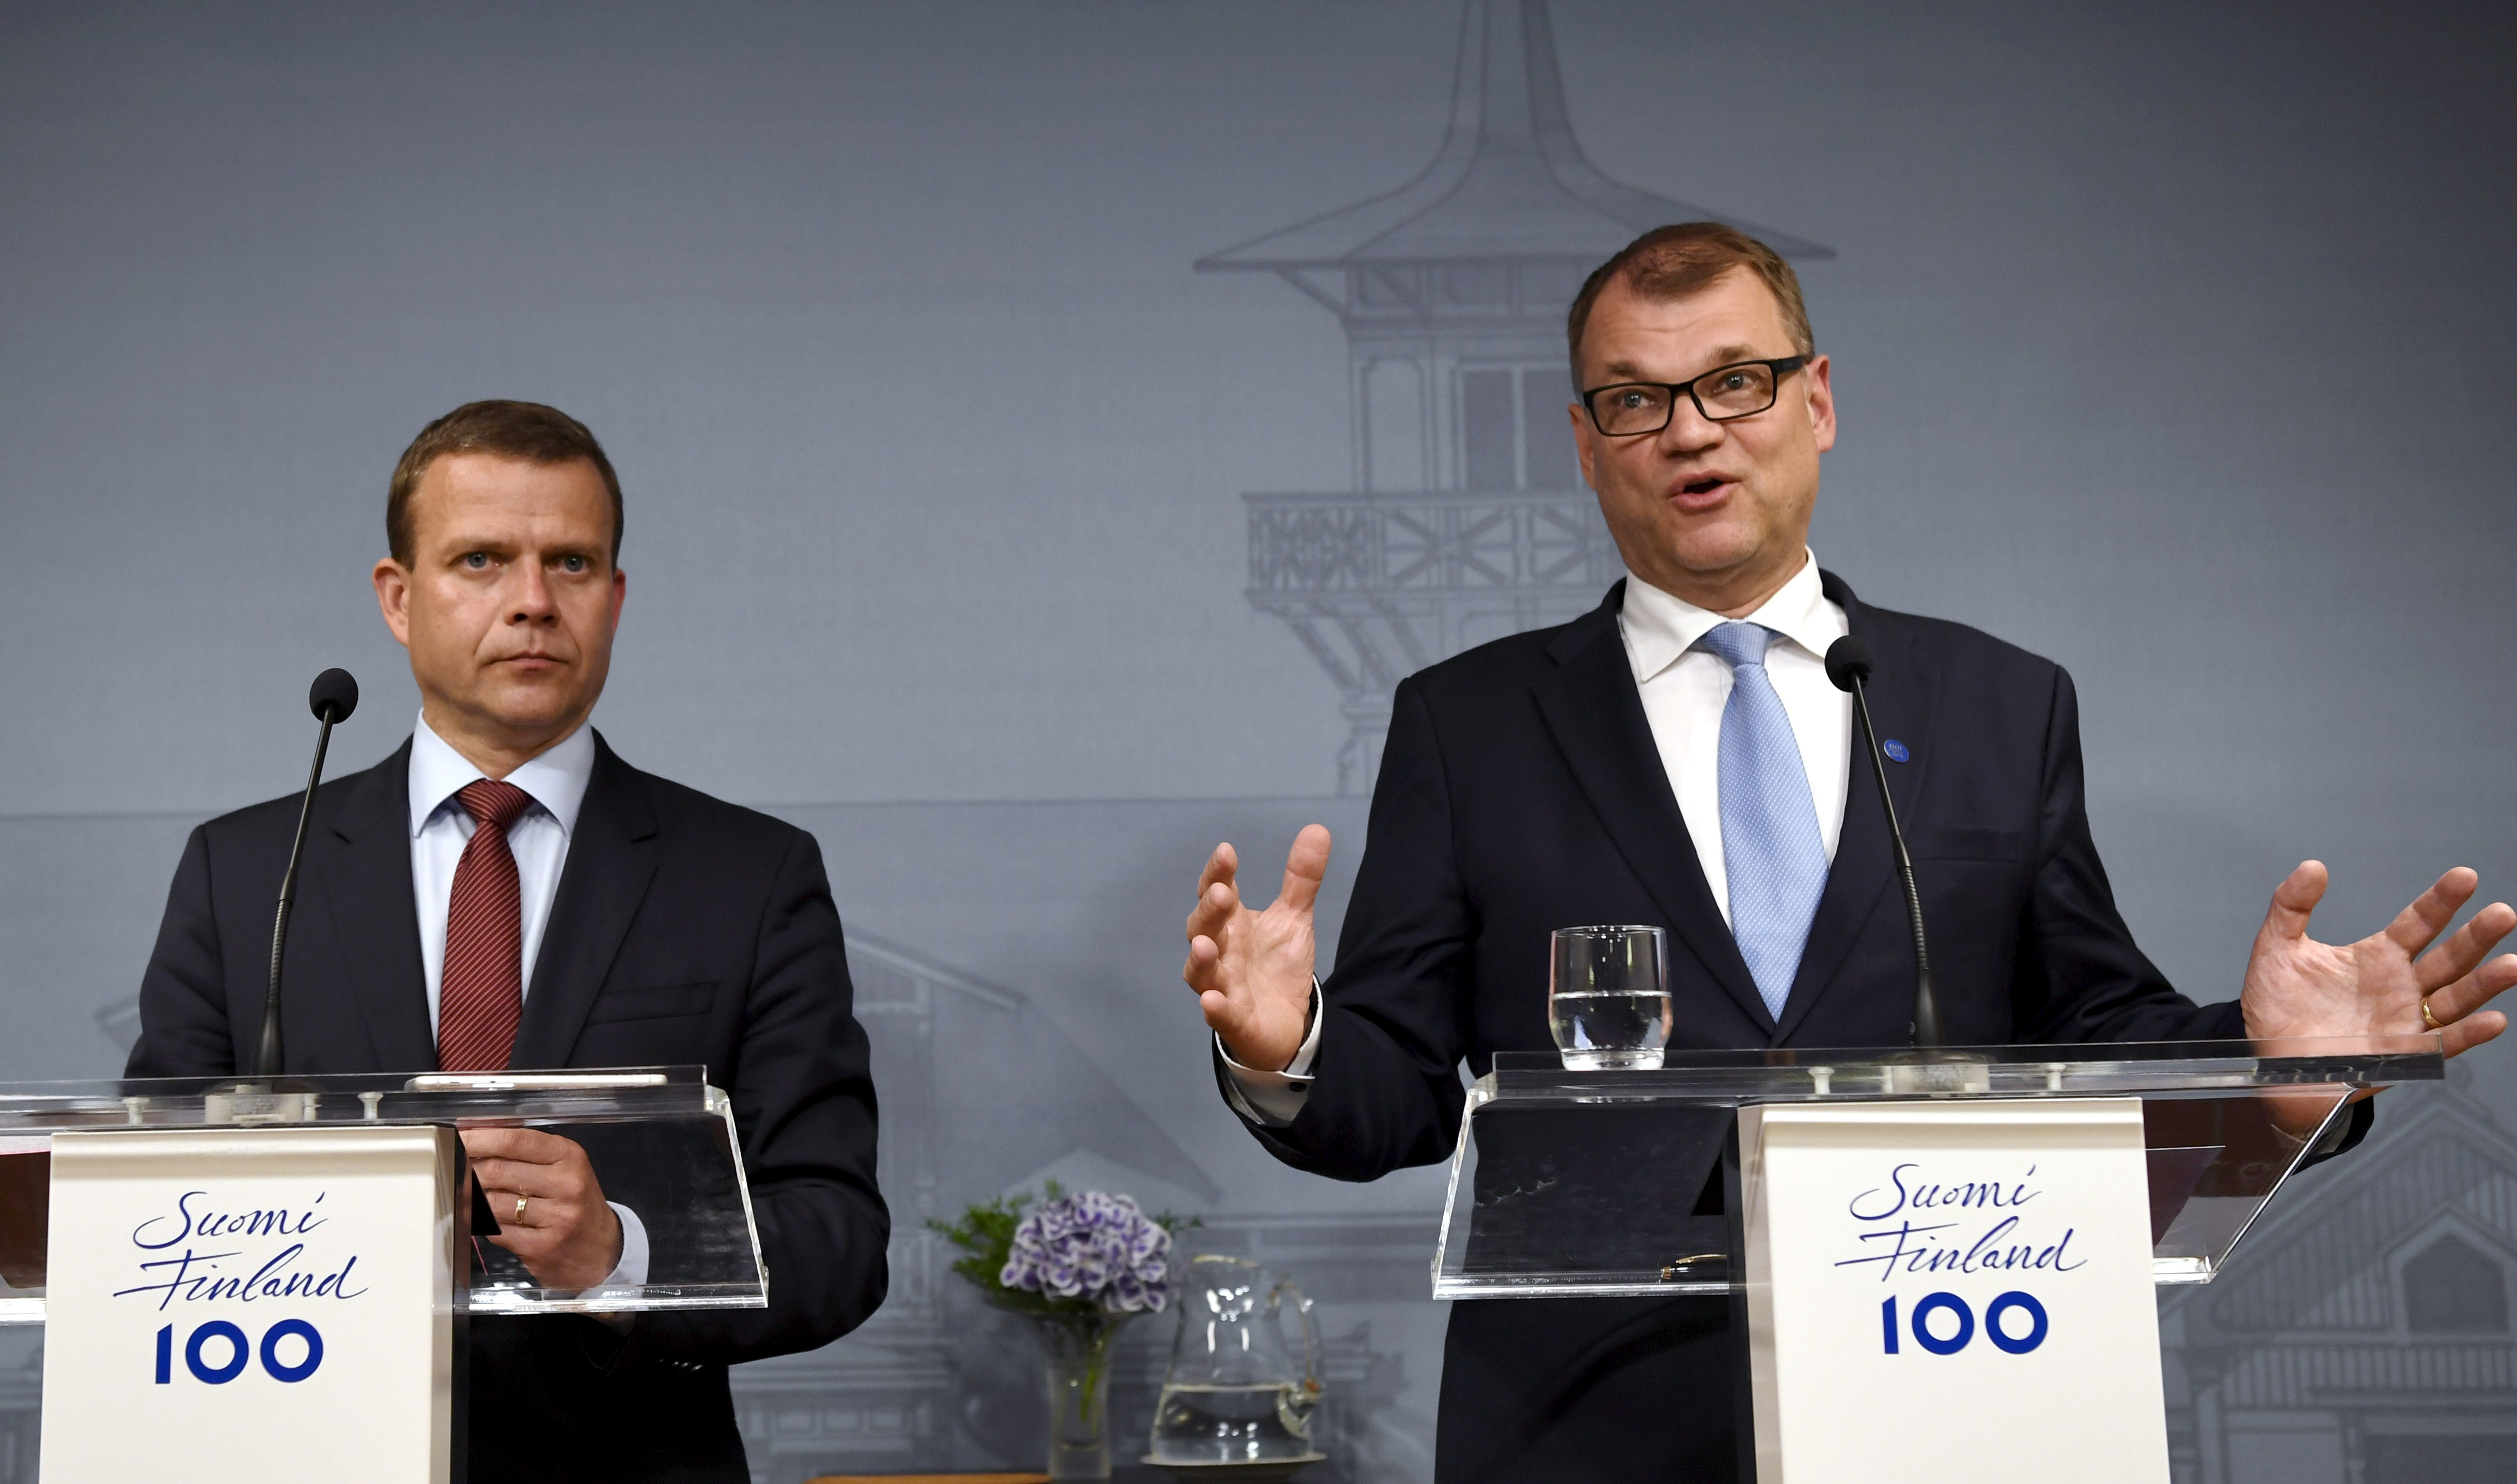 Finnish Minister of Finance and National Coalition chairman Petteri Orpo (L) and Finnish Prime Minister and Centre Party chairman Juha Sipila attend a news conference at the PM's official residence Kesaranta in Helsinki, Finland, June 12, 2017.